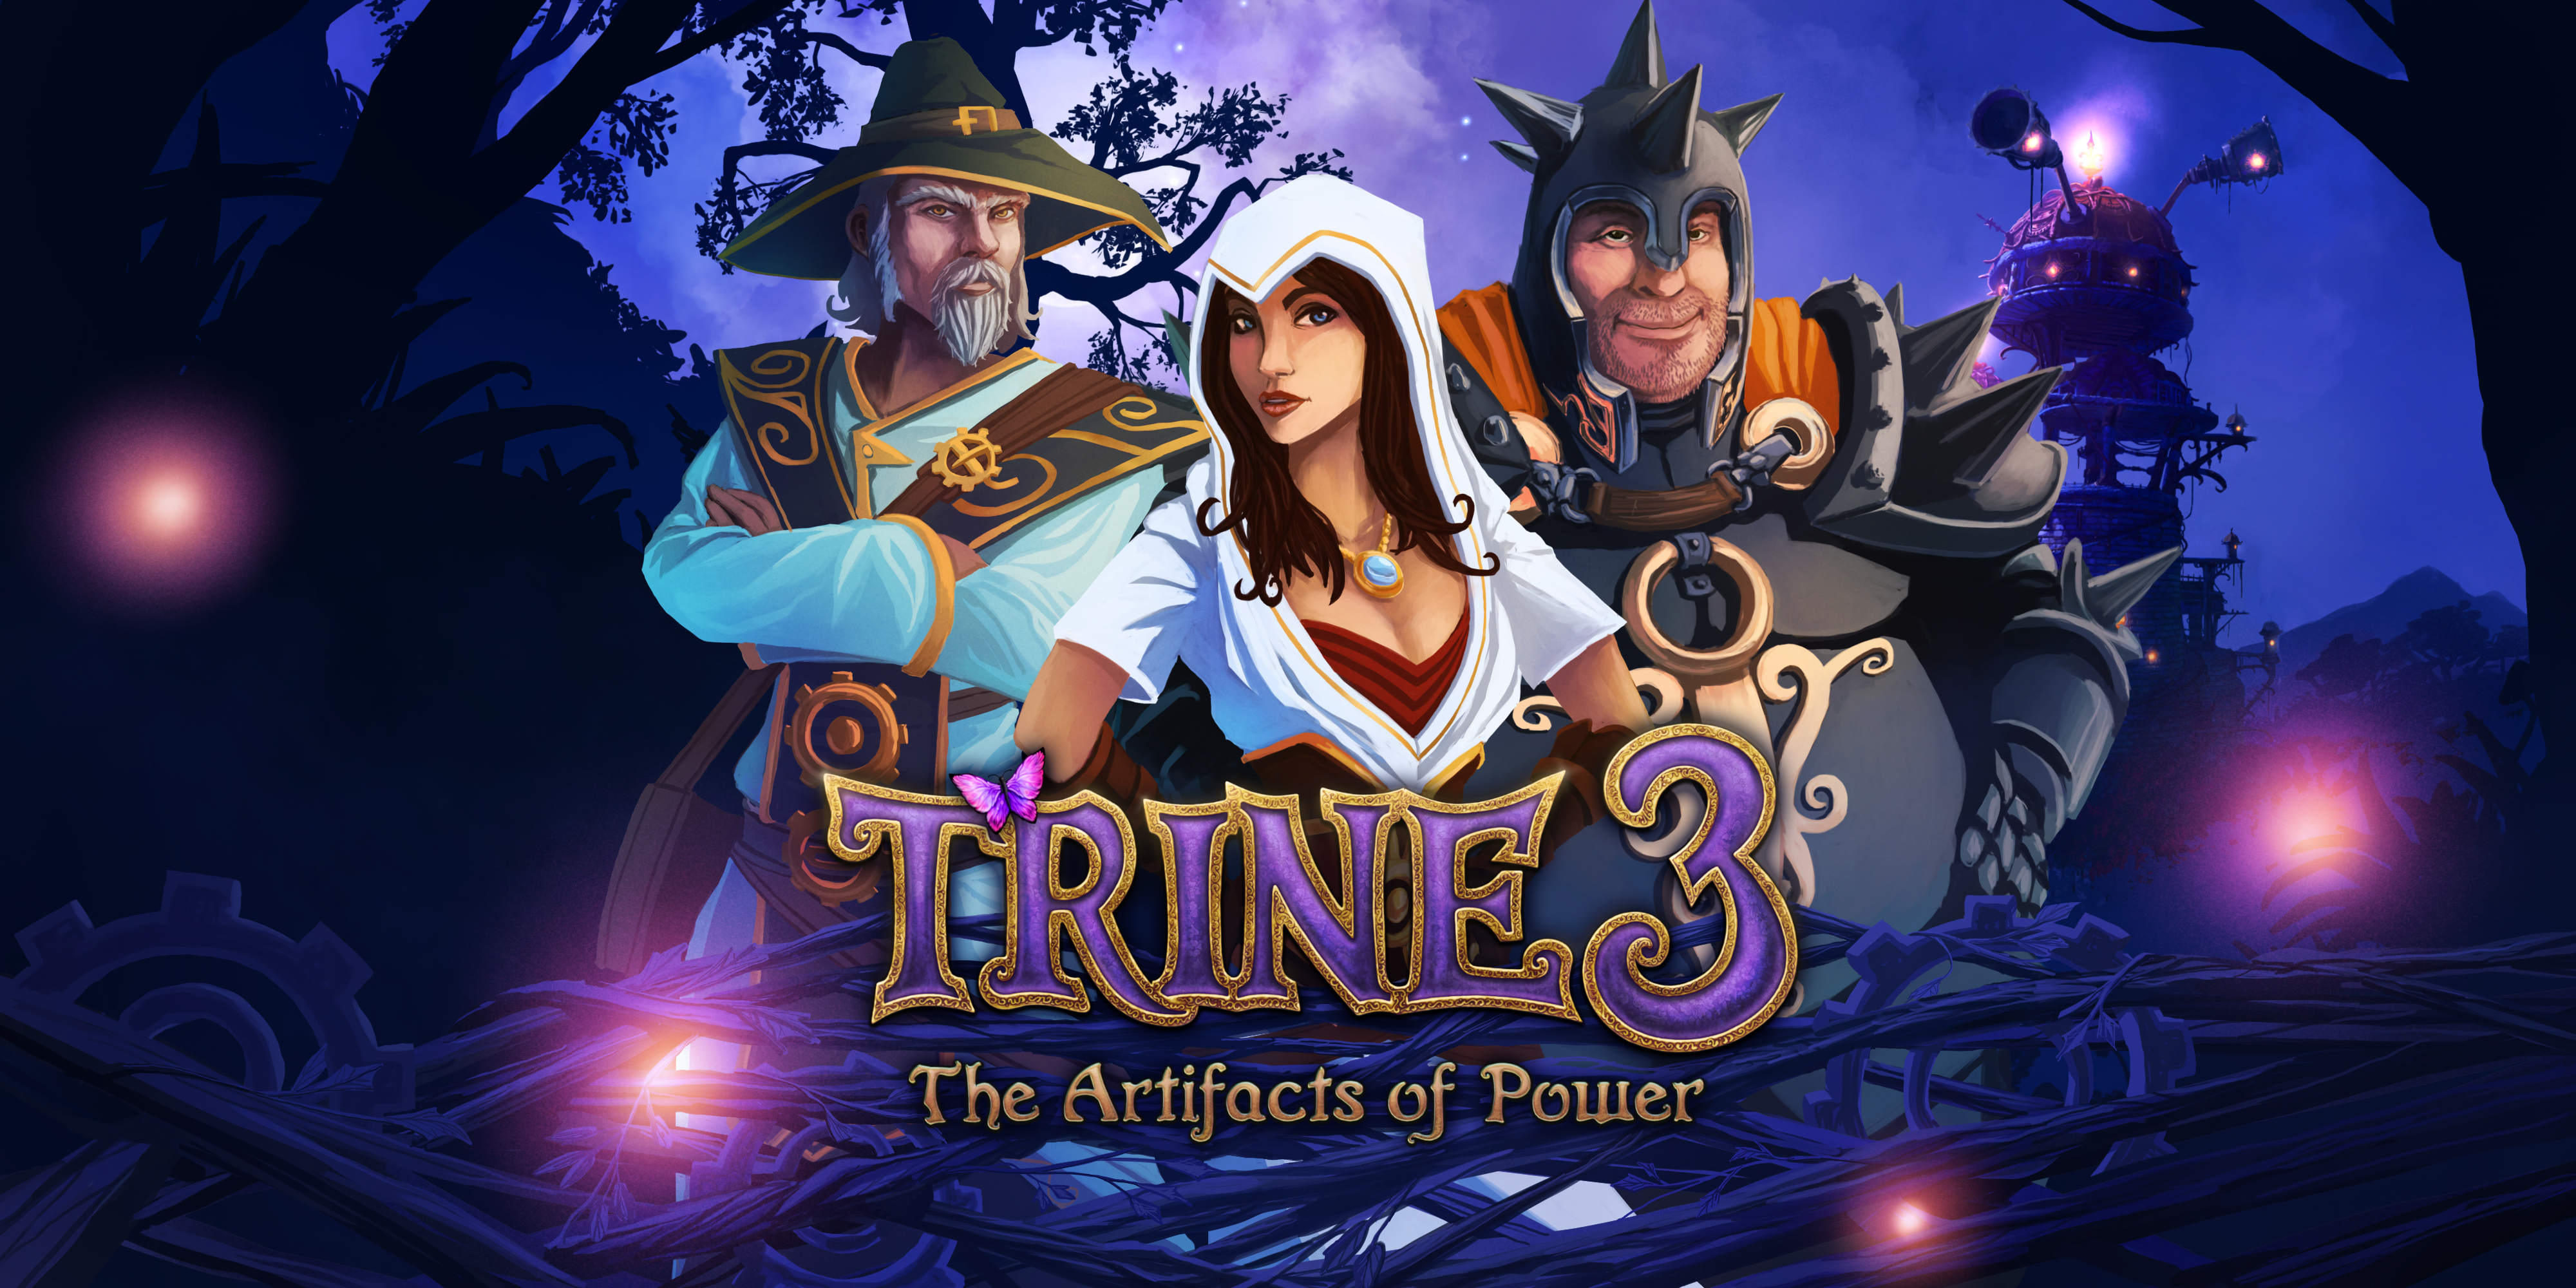 High Resolution Wallpaper | Trine 3: The Artifacts Of Power 4000x2000 px